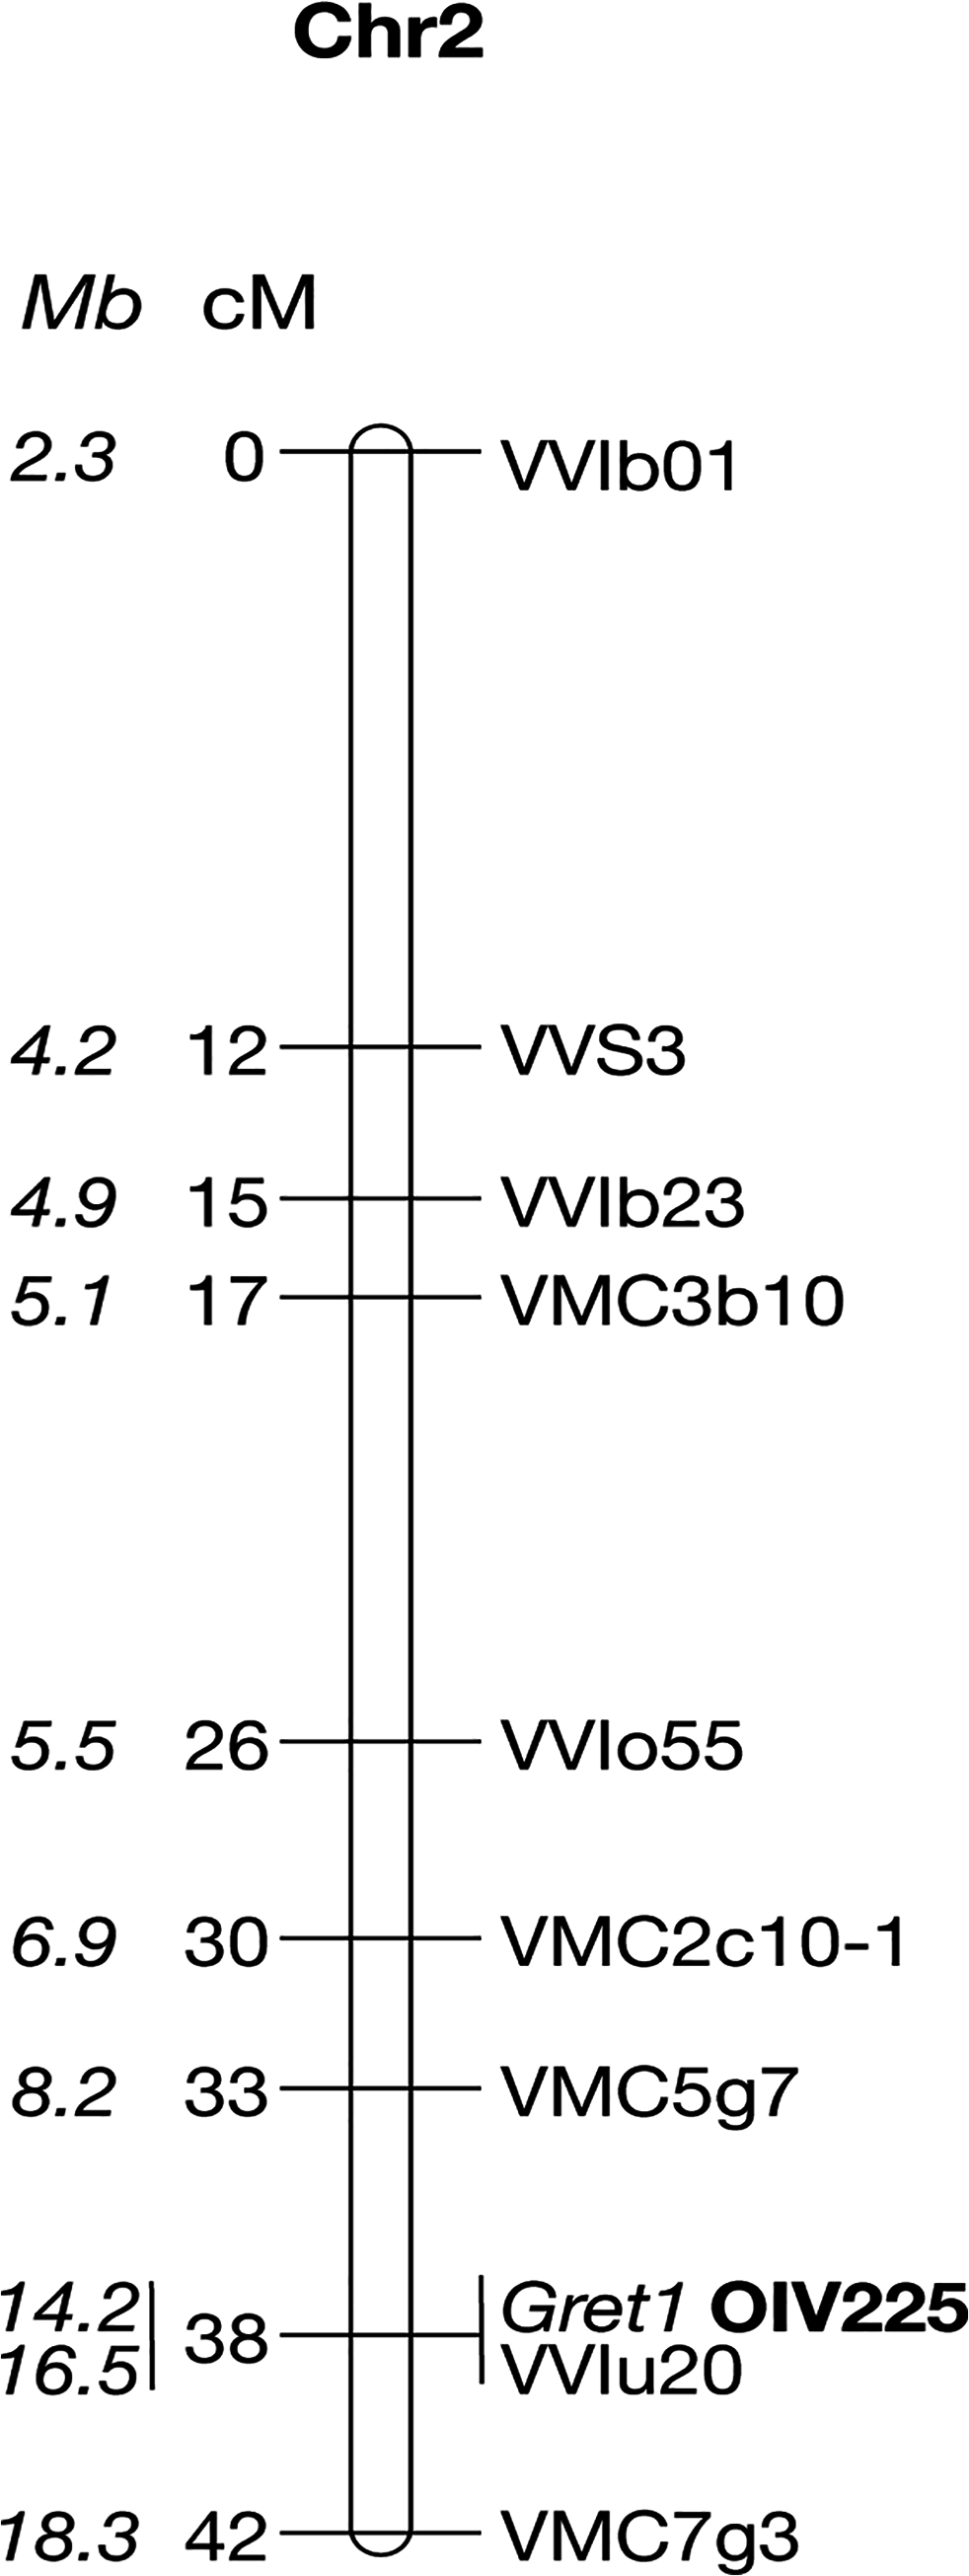 Genetic linkage map of the Pinot noir 162 chromosome 2.